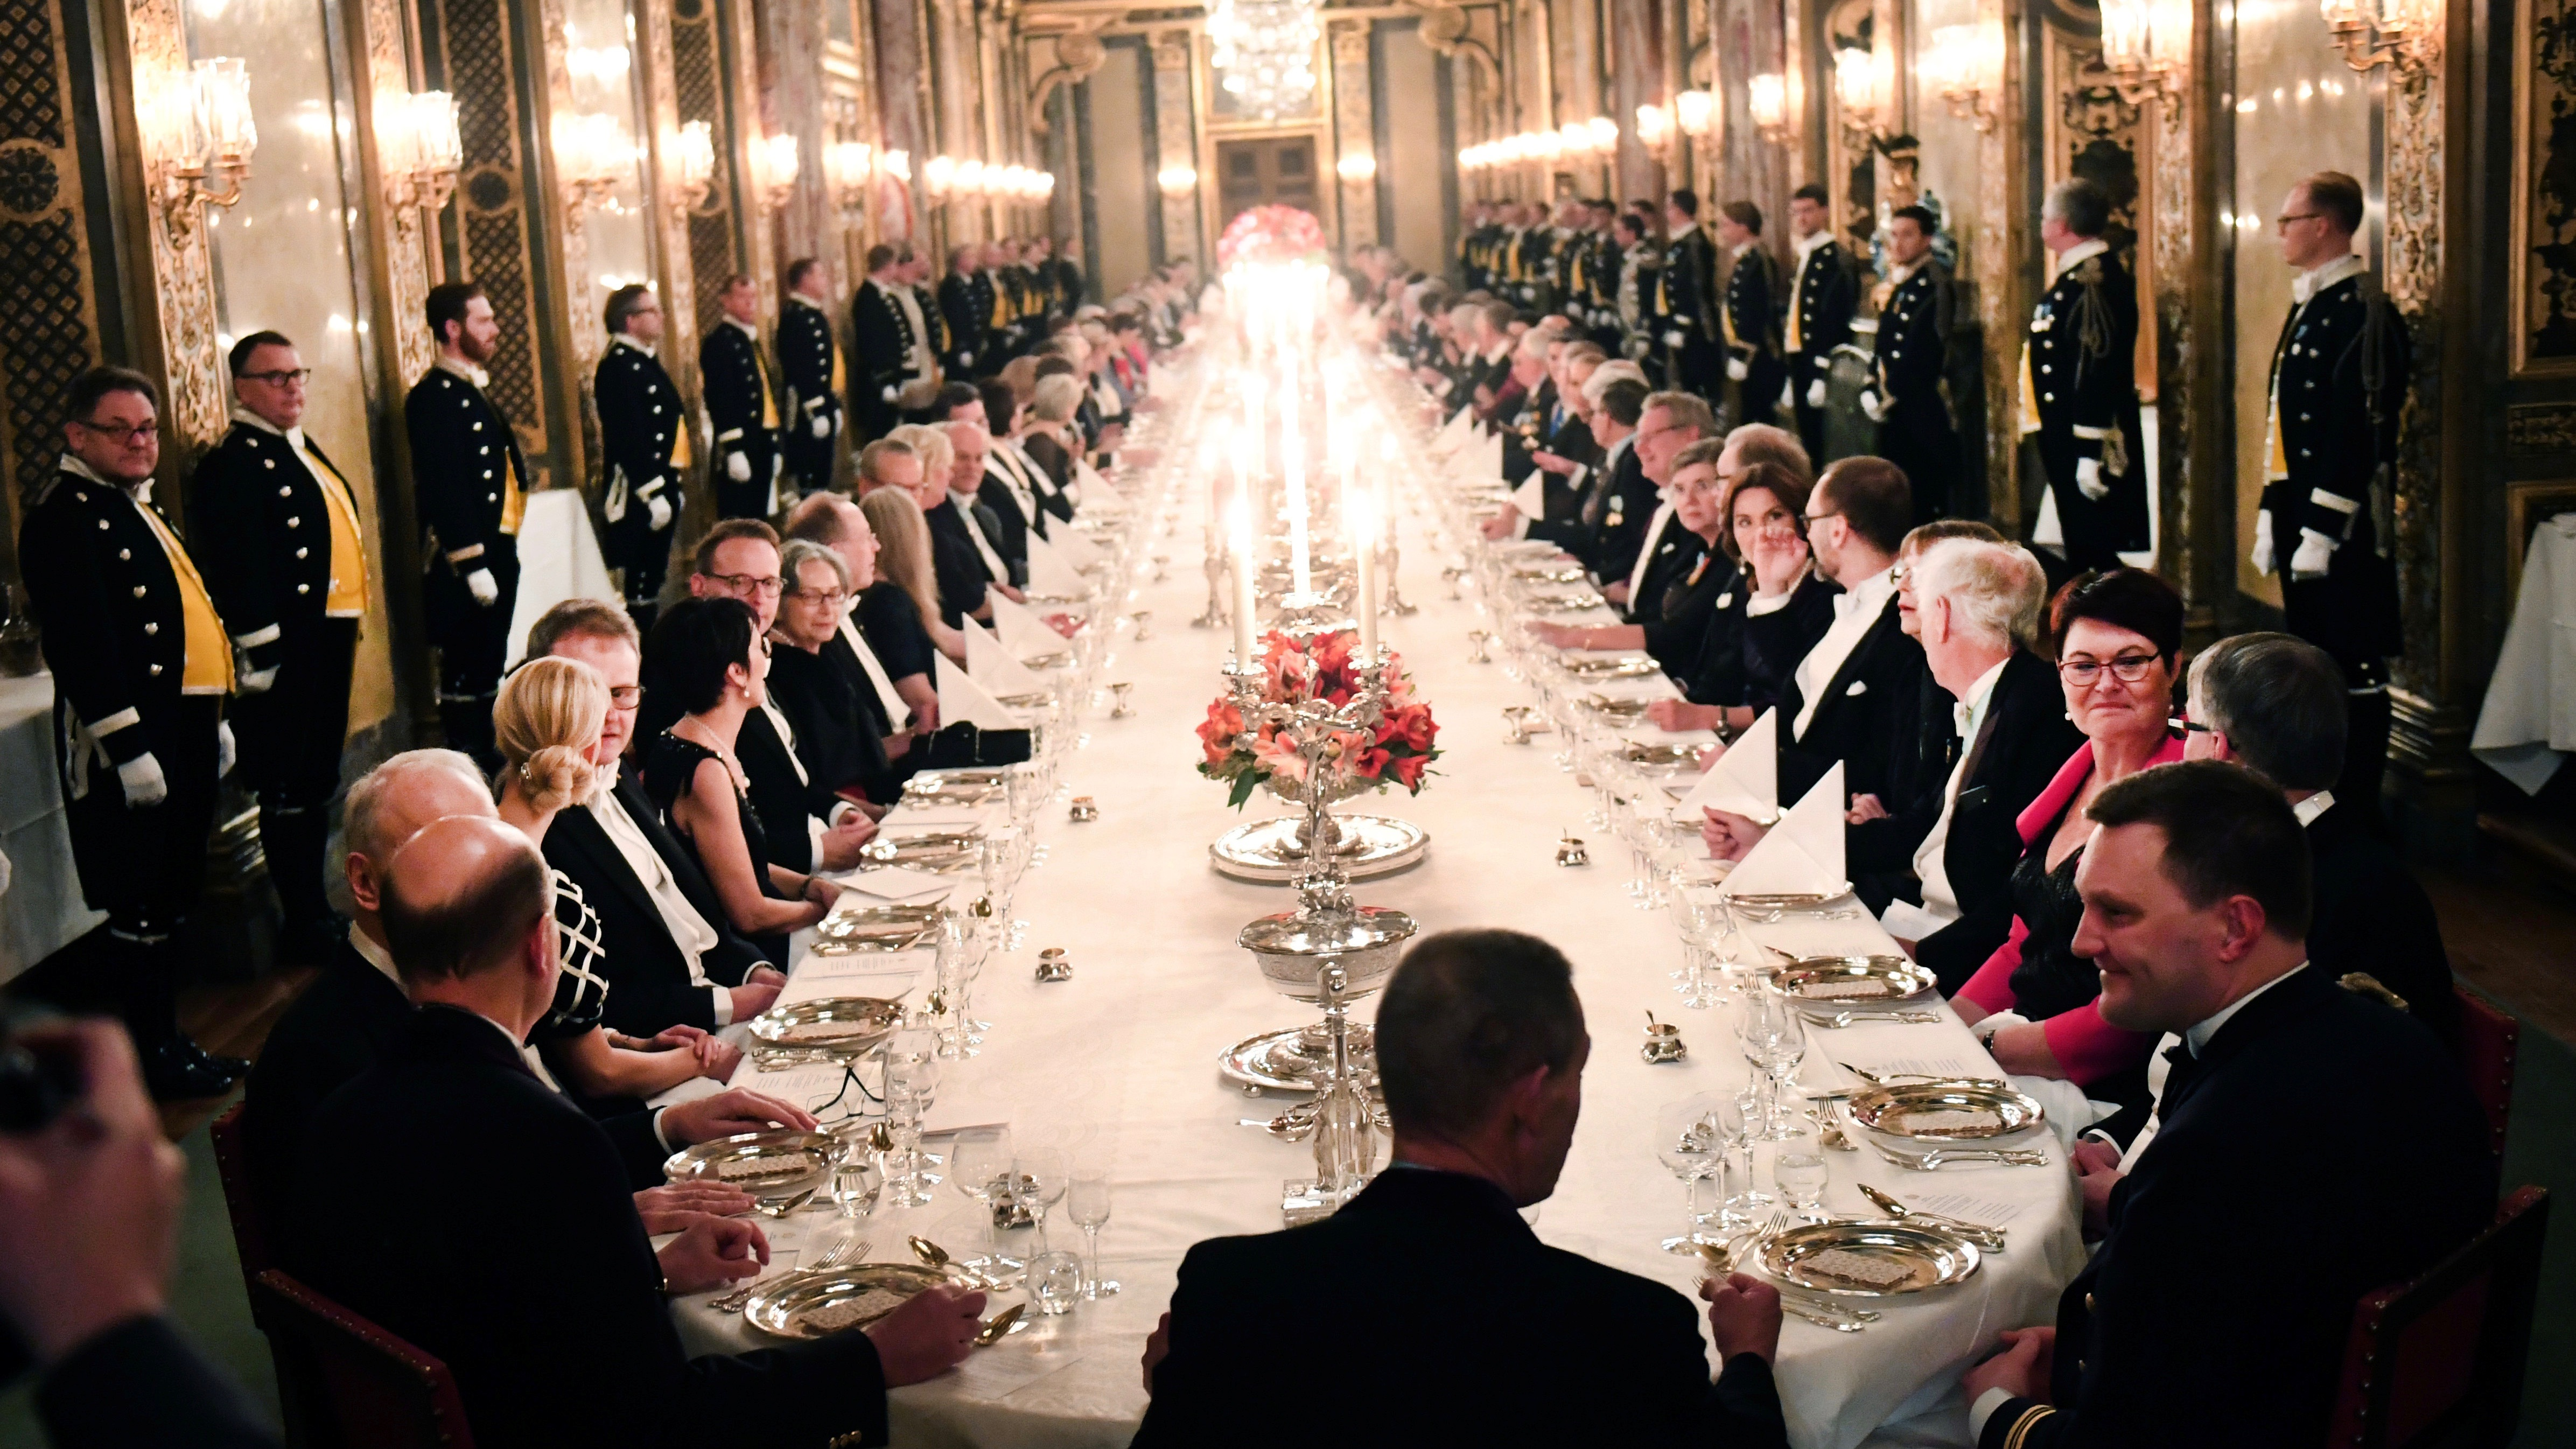 The King's dinner for Nobel Laureates at the Royal Palace in Stockholm.